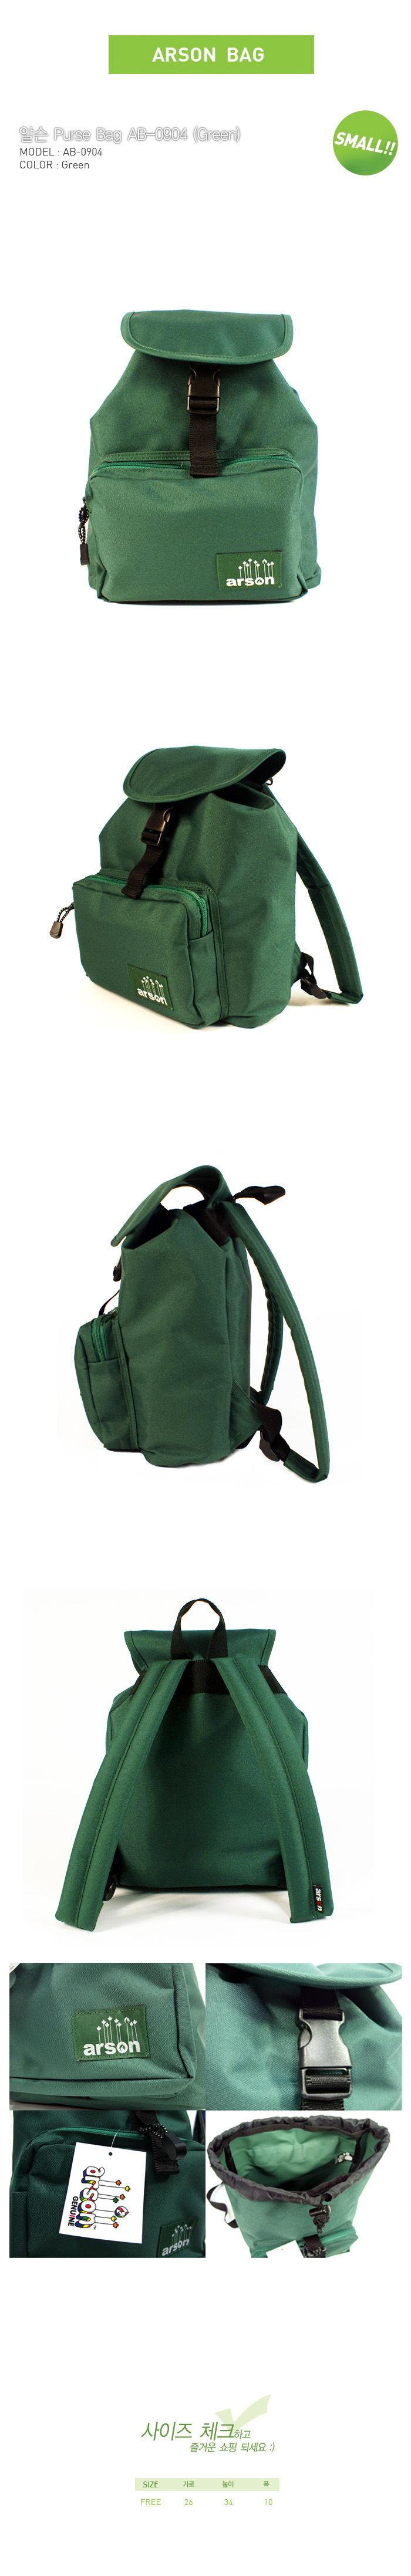 [ ARSON ] AB-0904 (Green)/Backpack School Bag